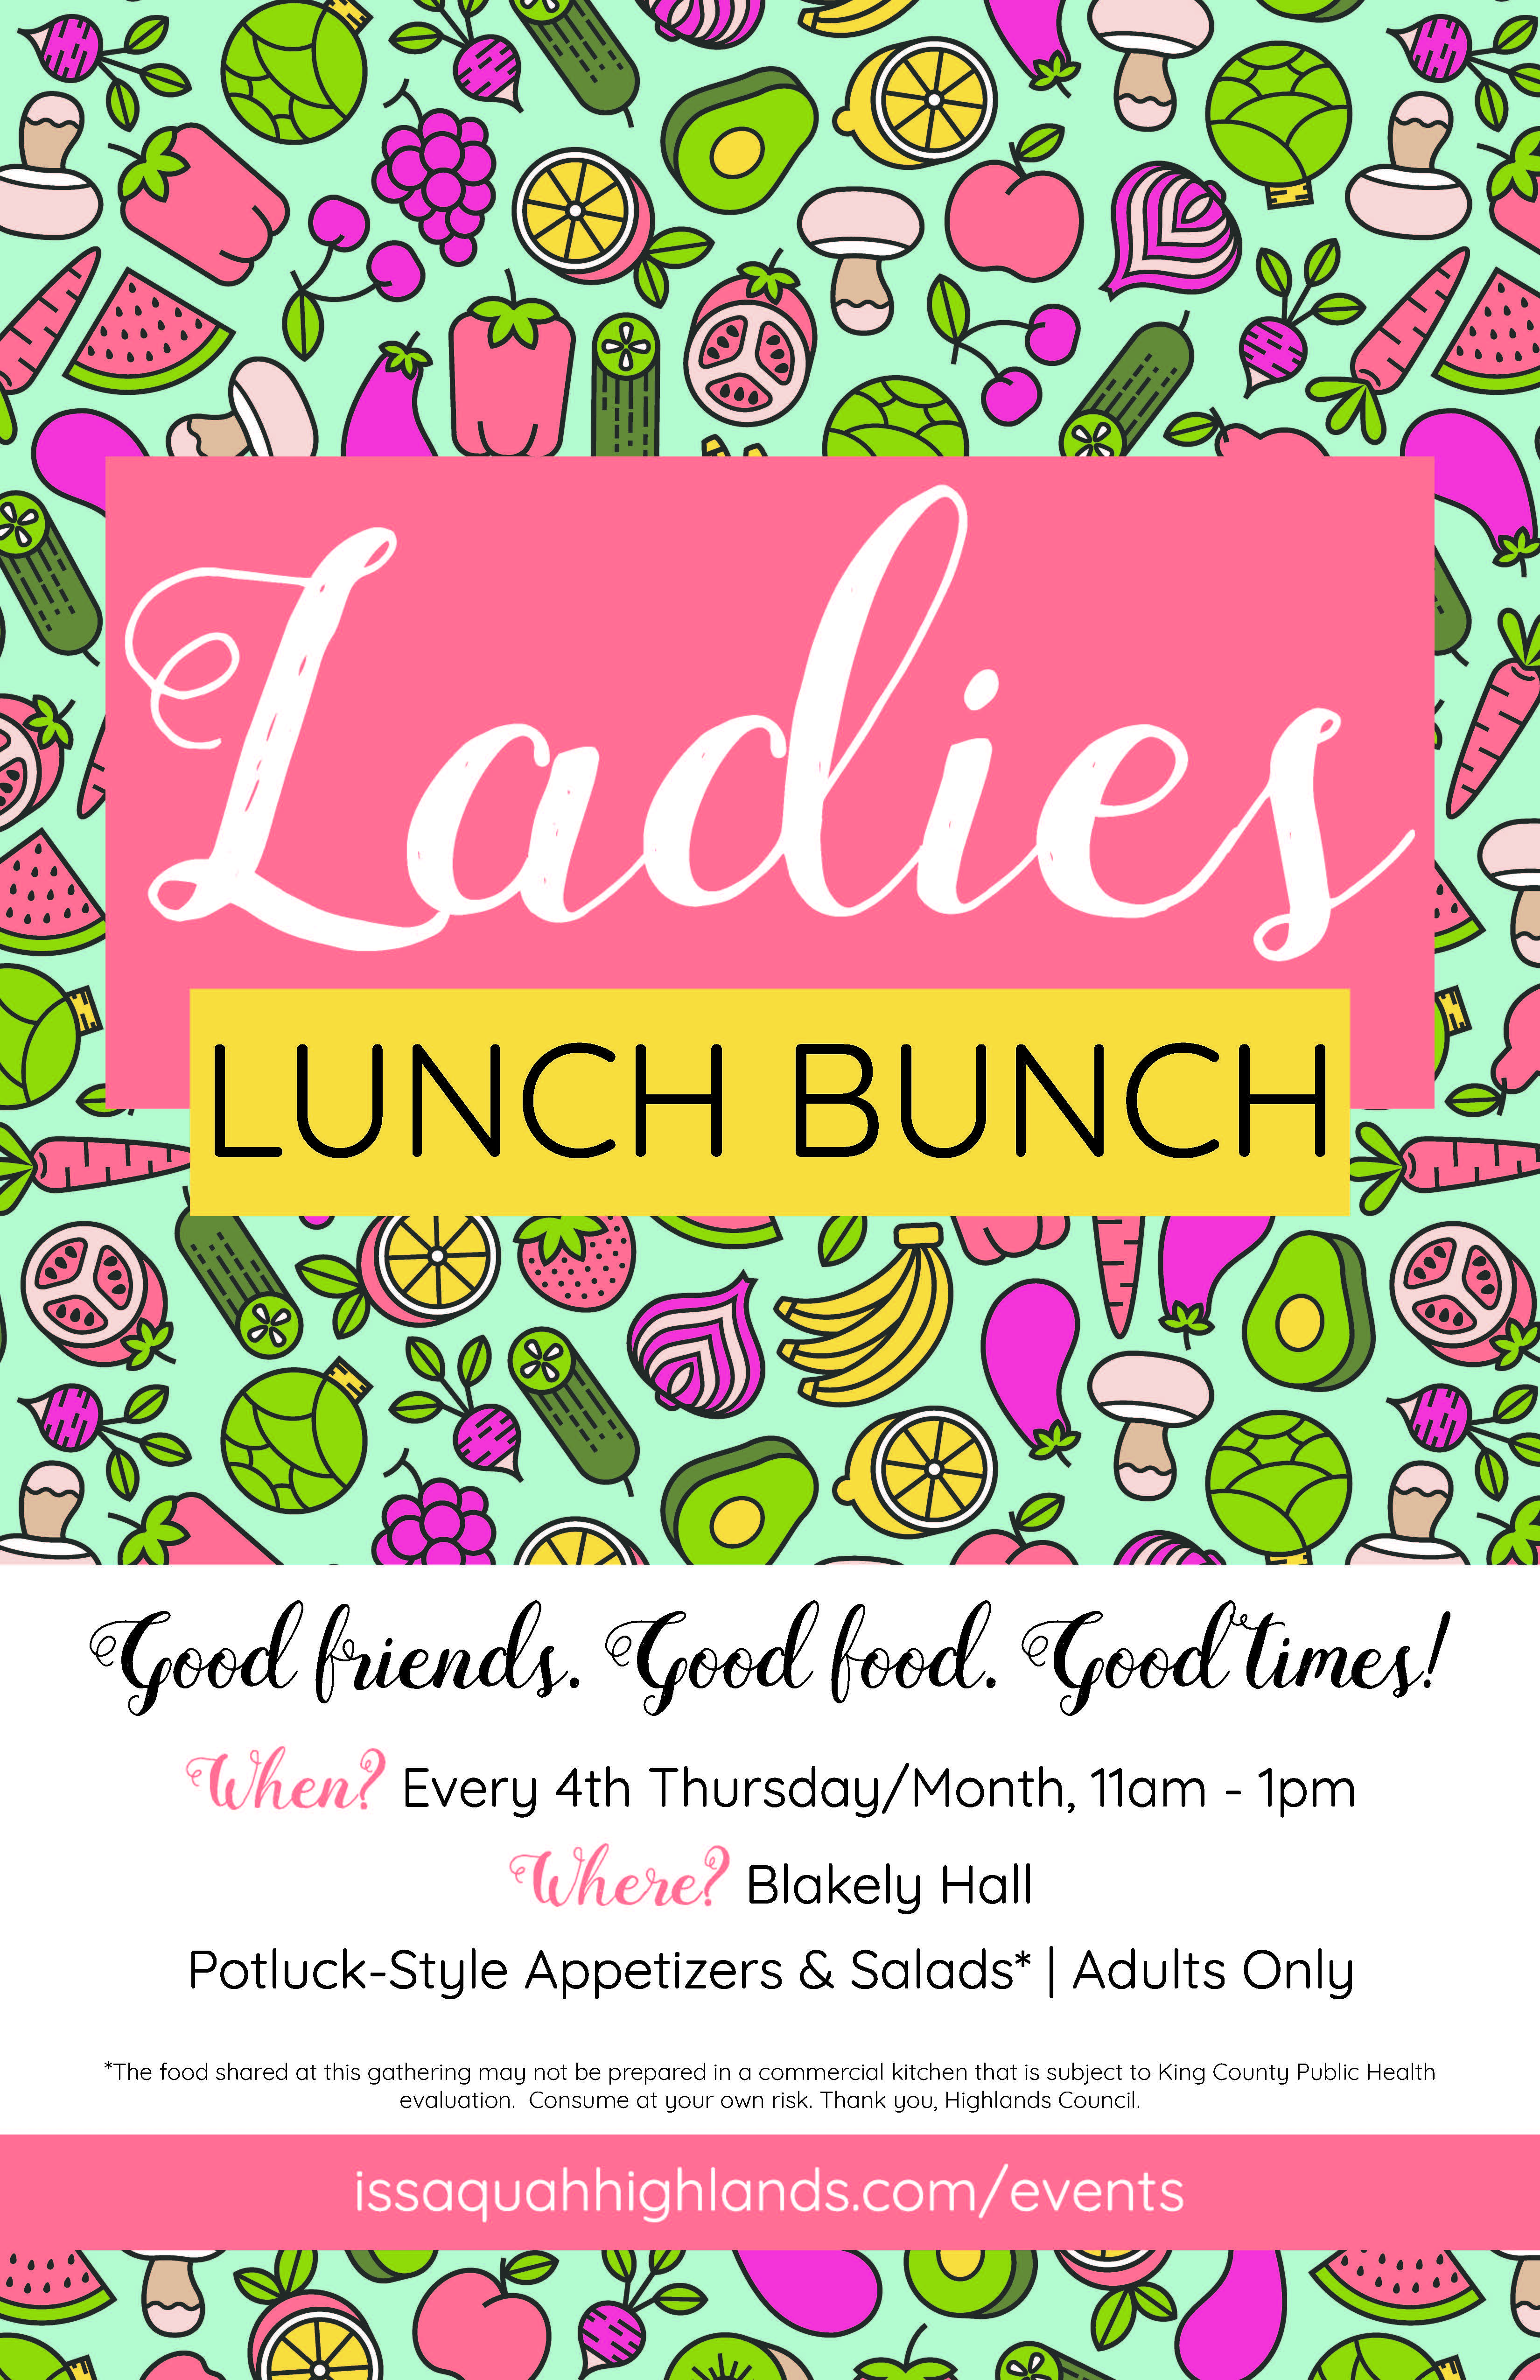 Ladies Lunch Bunch Issaquah Highlands